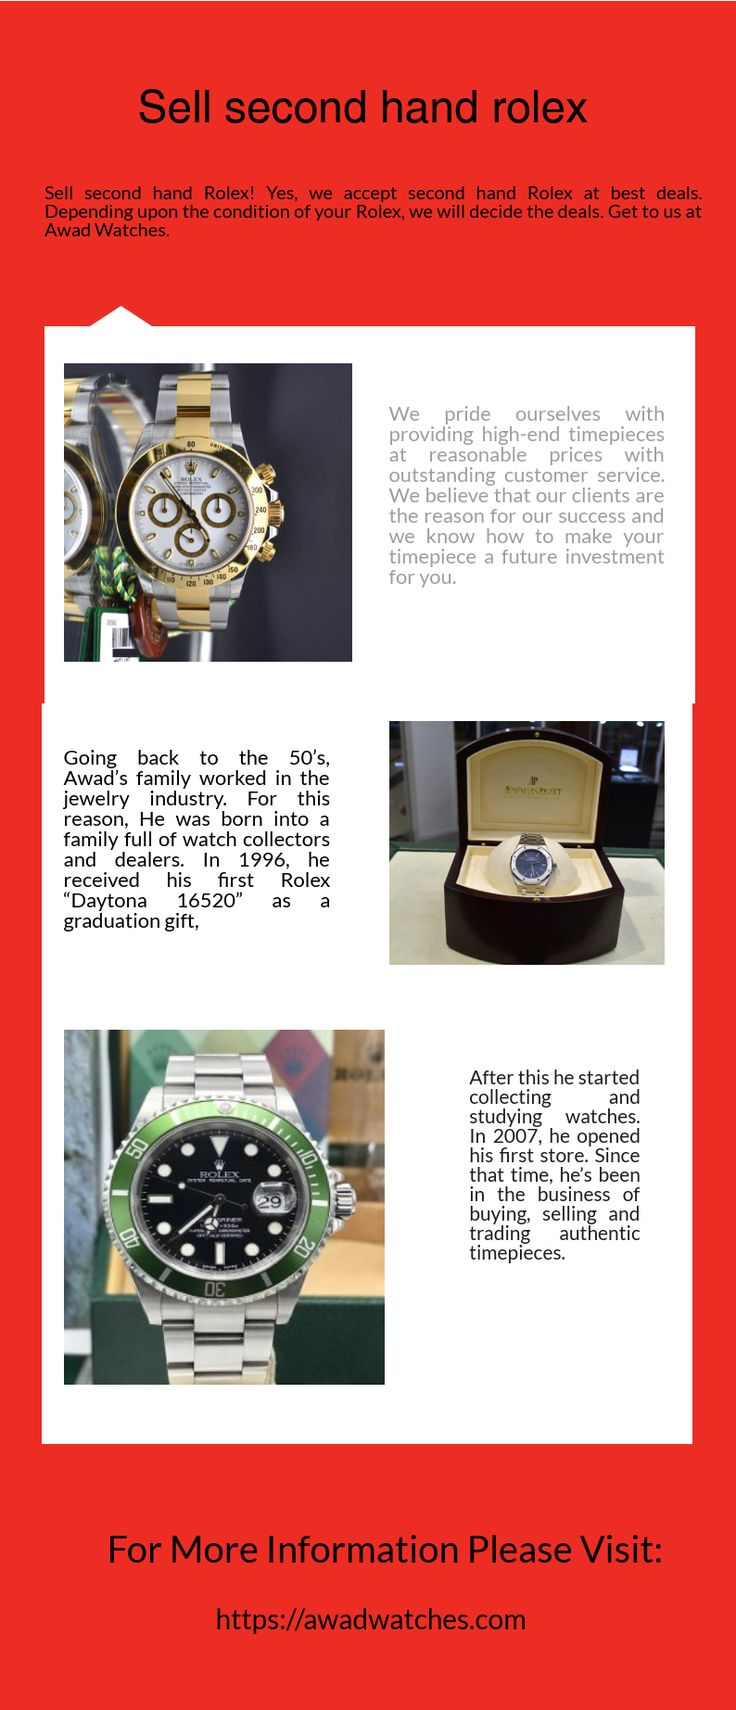 Sell second hand Rolex! Yes, we accept second hand Rolex at best deals. Depending upon the condition of your Rolex, we will decide the deals. Get to us at Awad Watches. Visit: https://awadwatches.com